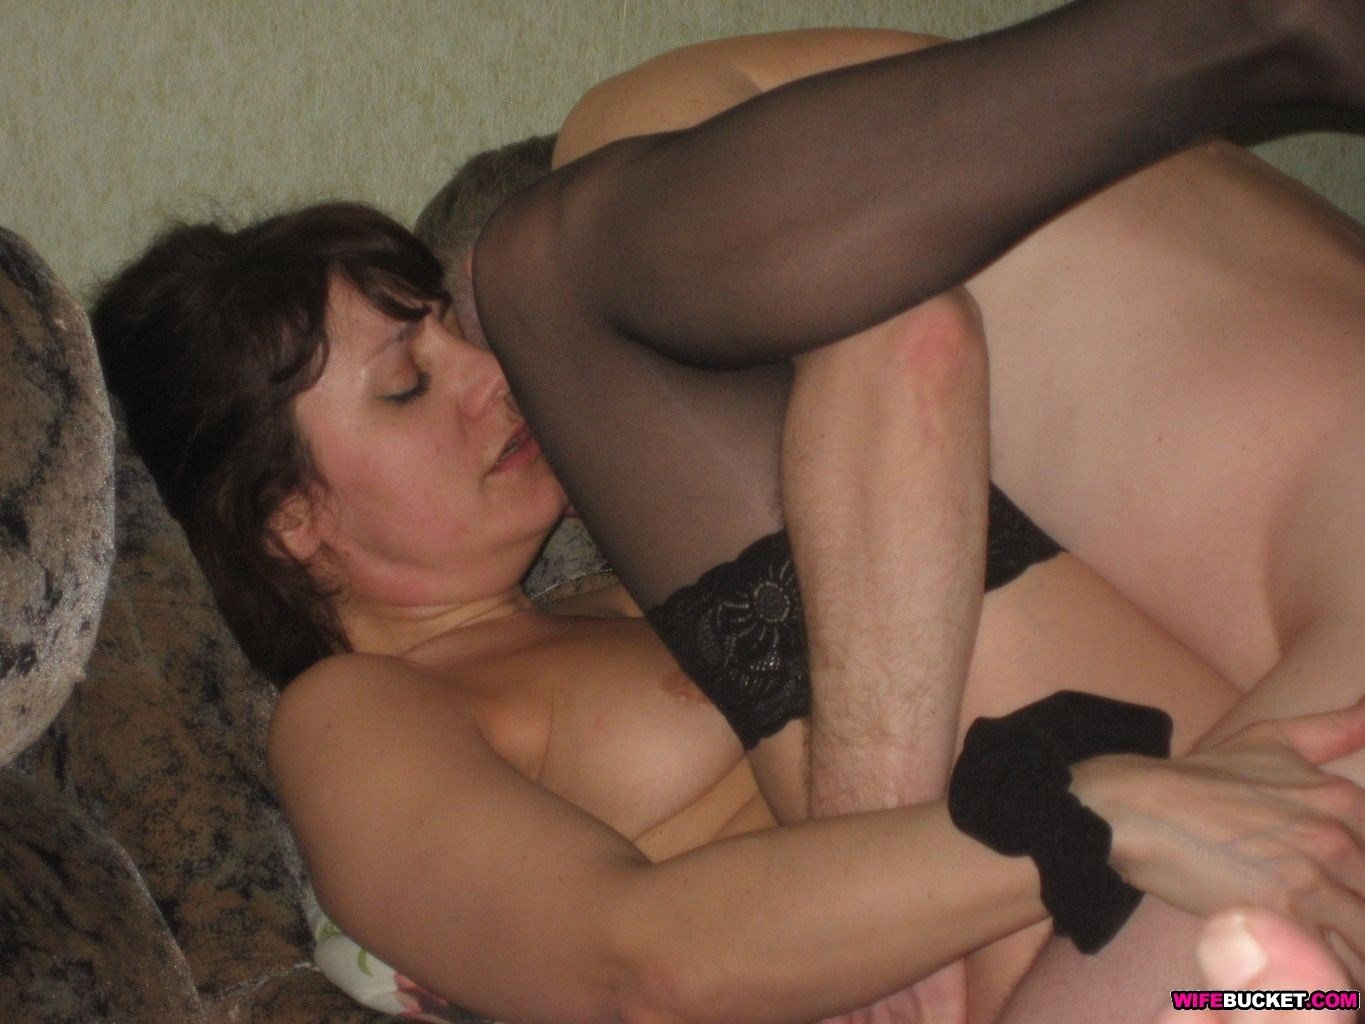 Lorry squirt webcam cheating wife sex with husband friend